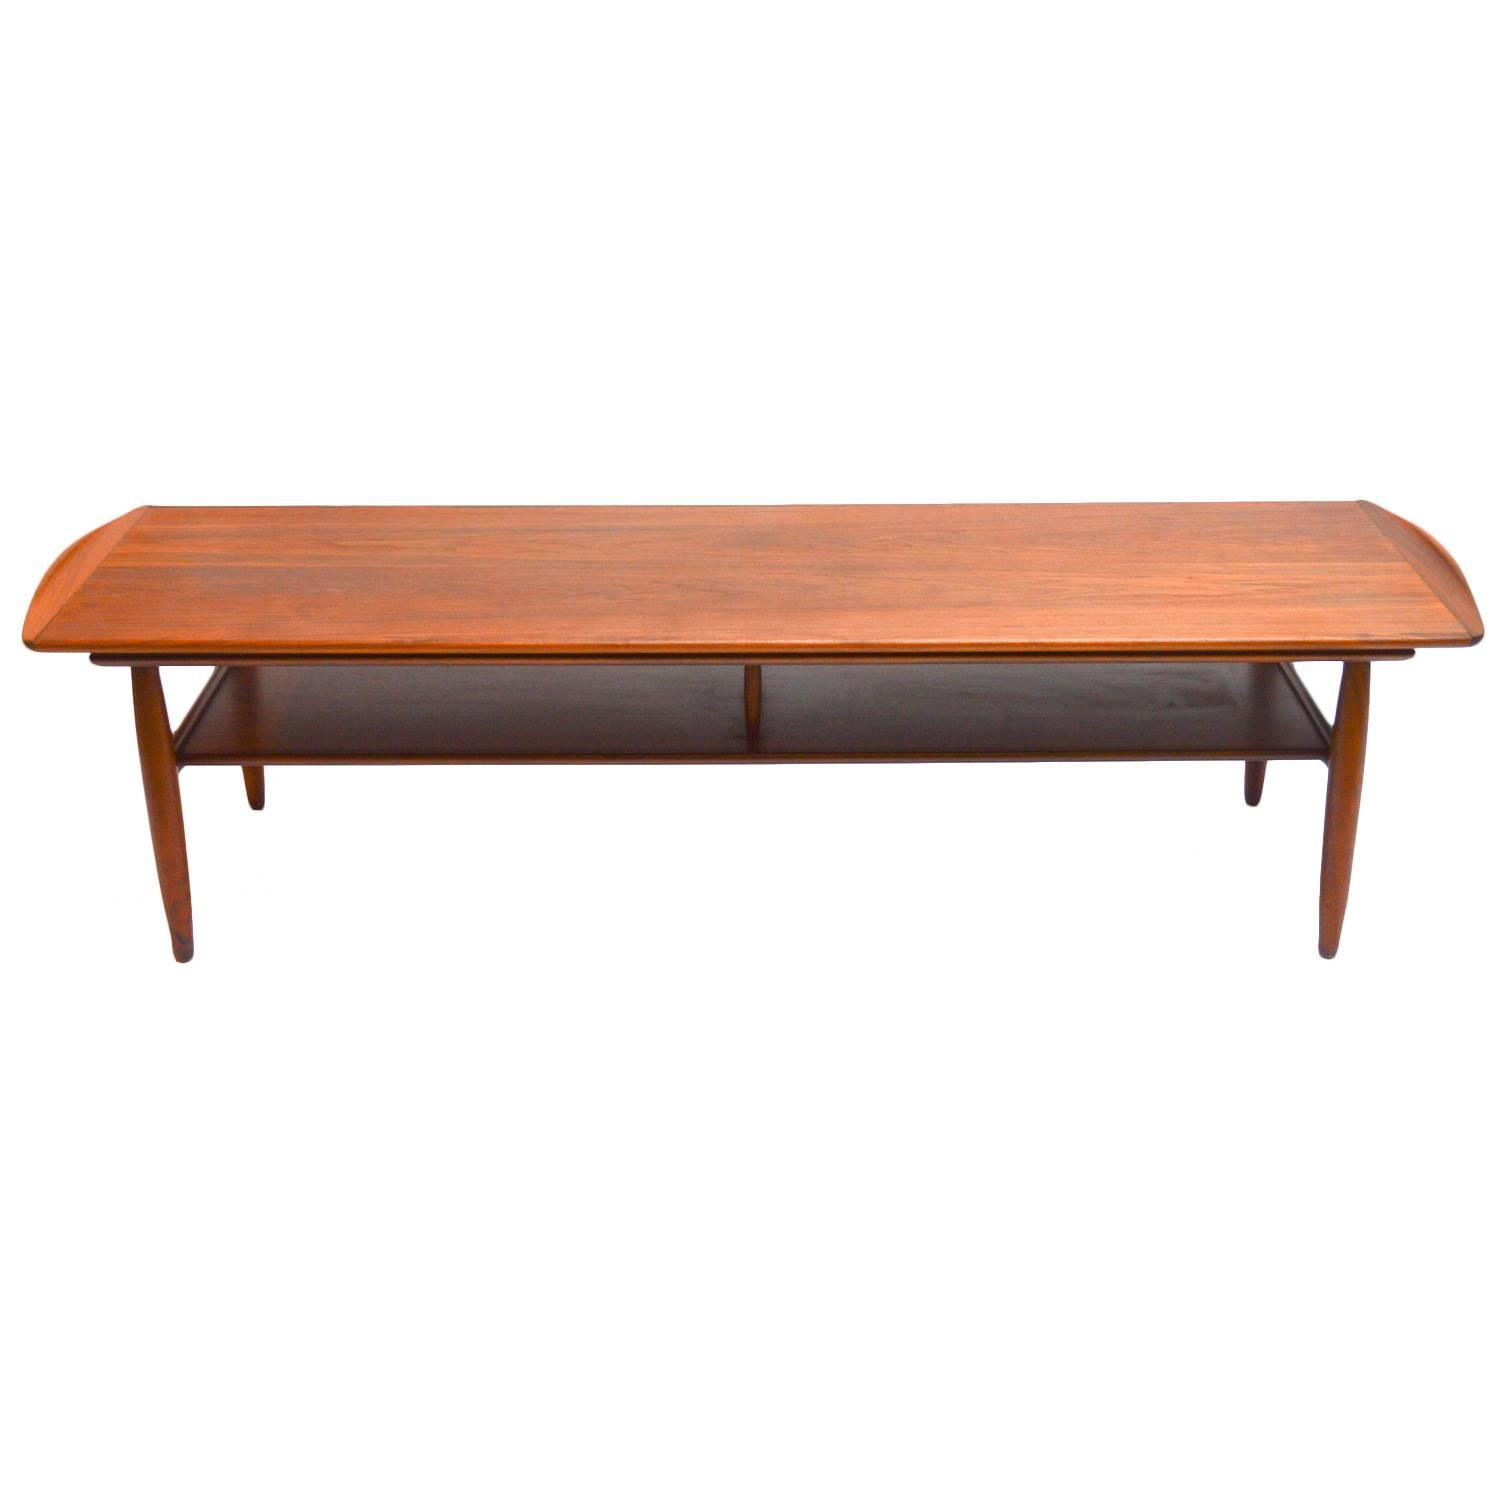 Mid-Century Modern Two-Tiered Walnut Coffee Table At 1stdibs